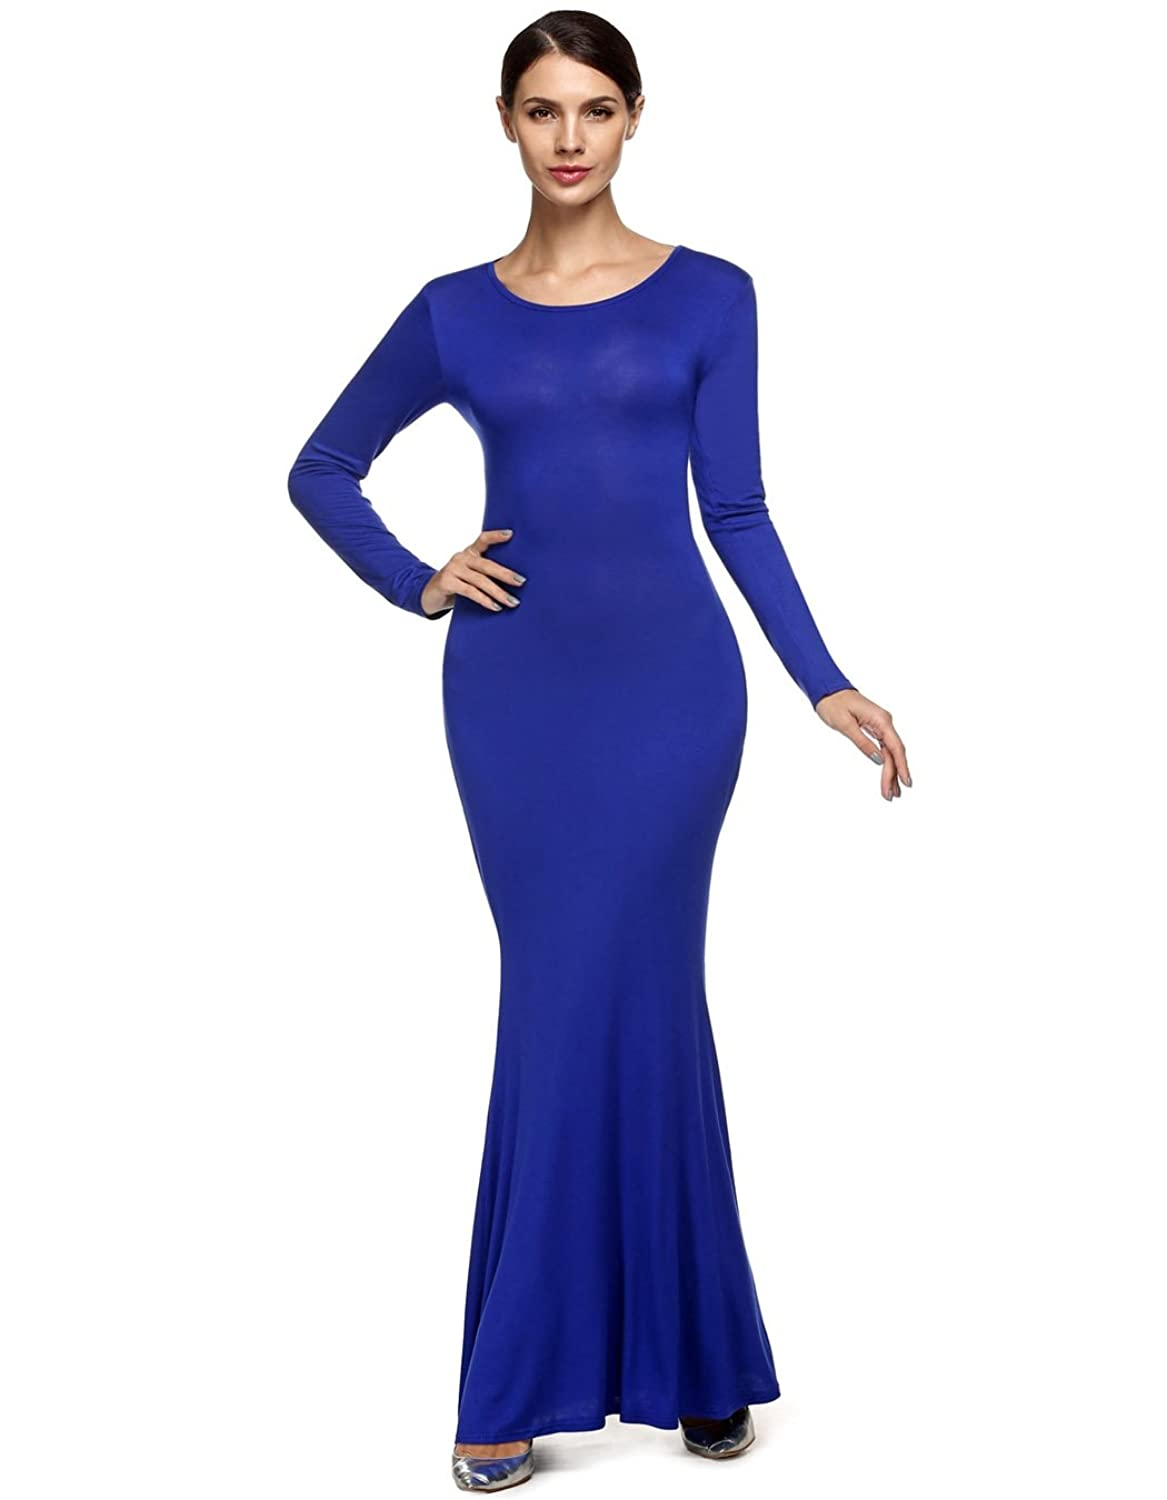 Meloo Damen Kleid Elegant Lange Hülse backless Cocktailkleid Kleid ...